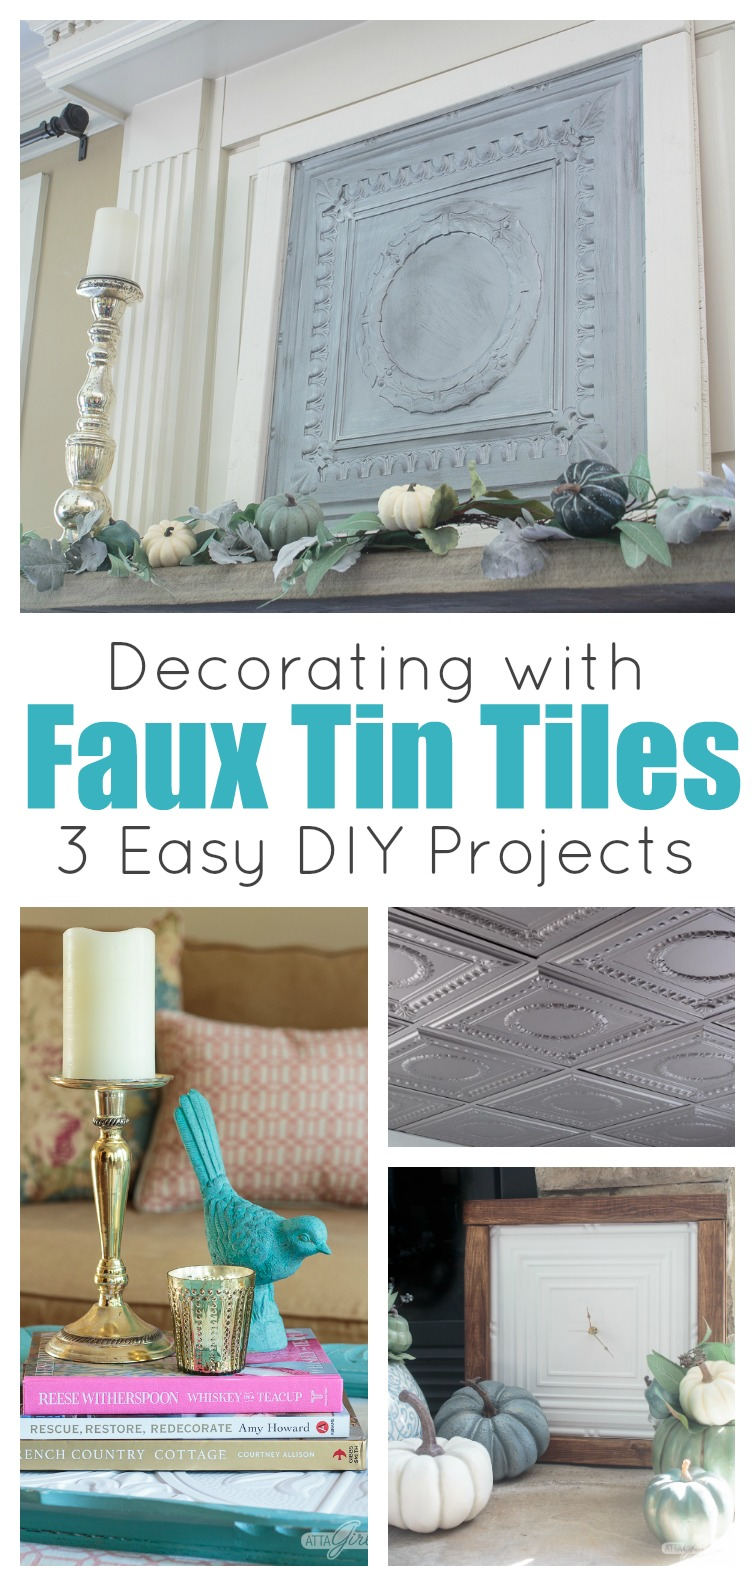 collage photo titled Decorating with Faux Tin Tiles: 3 Easy DIY Projects showing oversized tin artwork, a tray, a tin ceiling and a clock made from ceiling tile